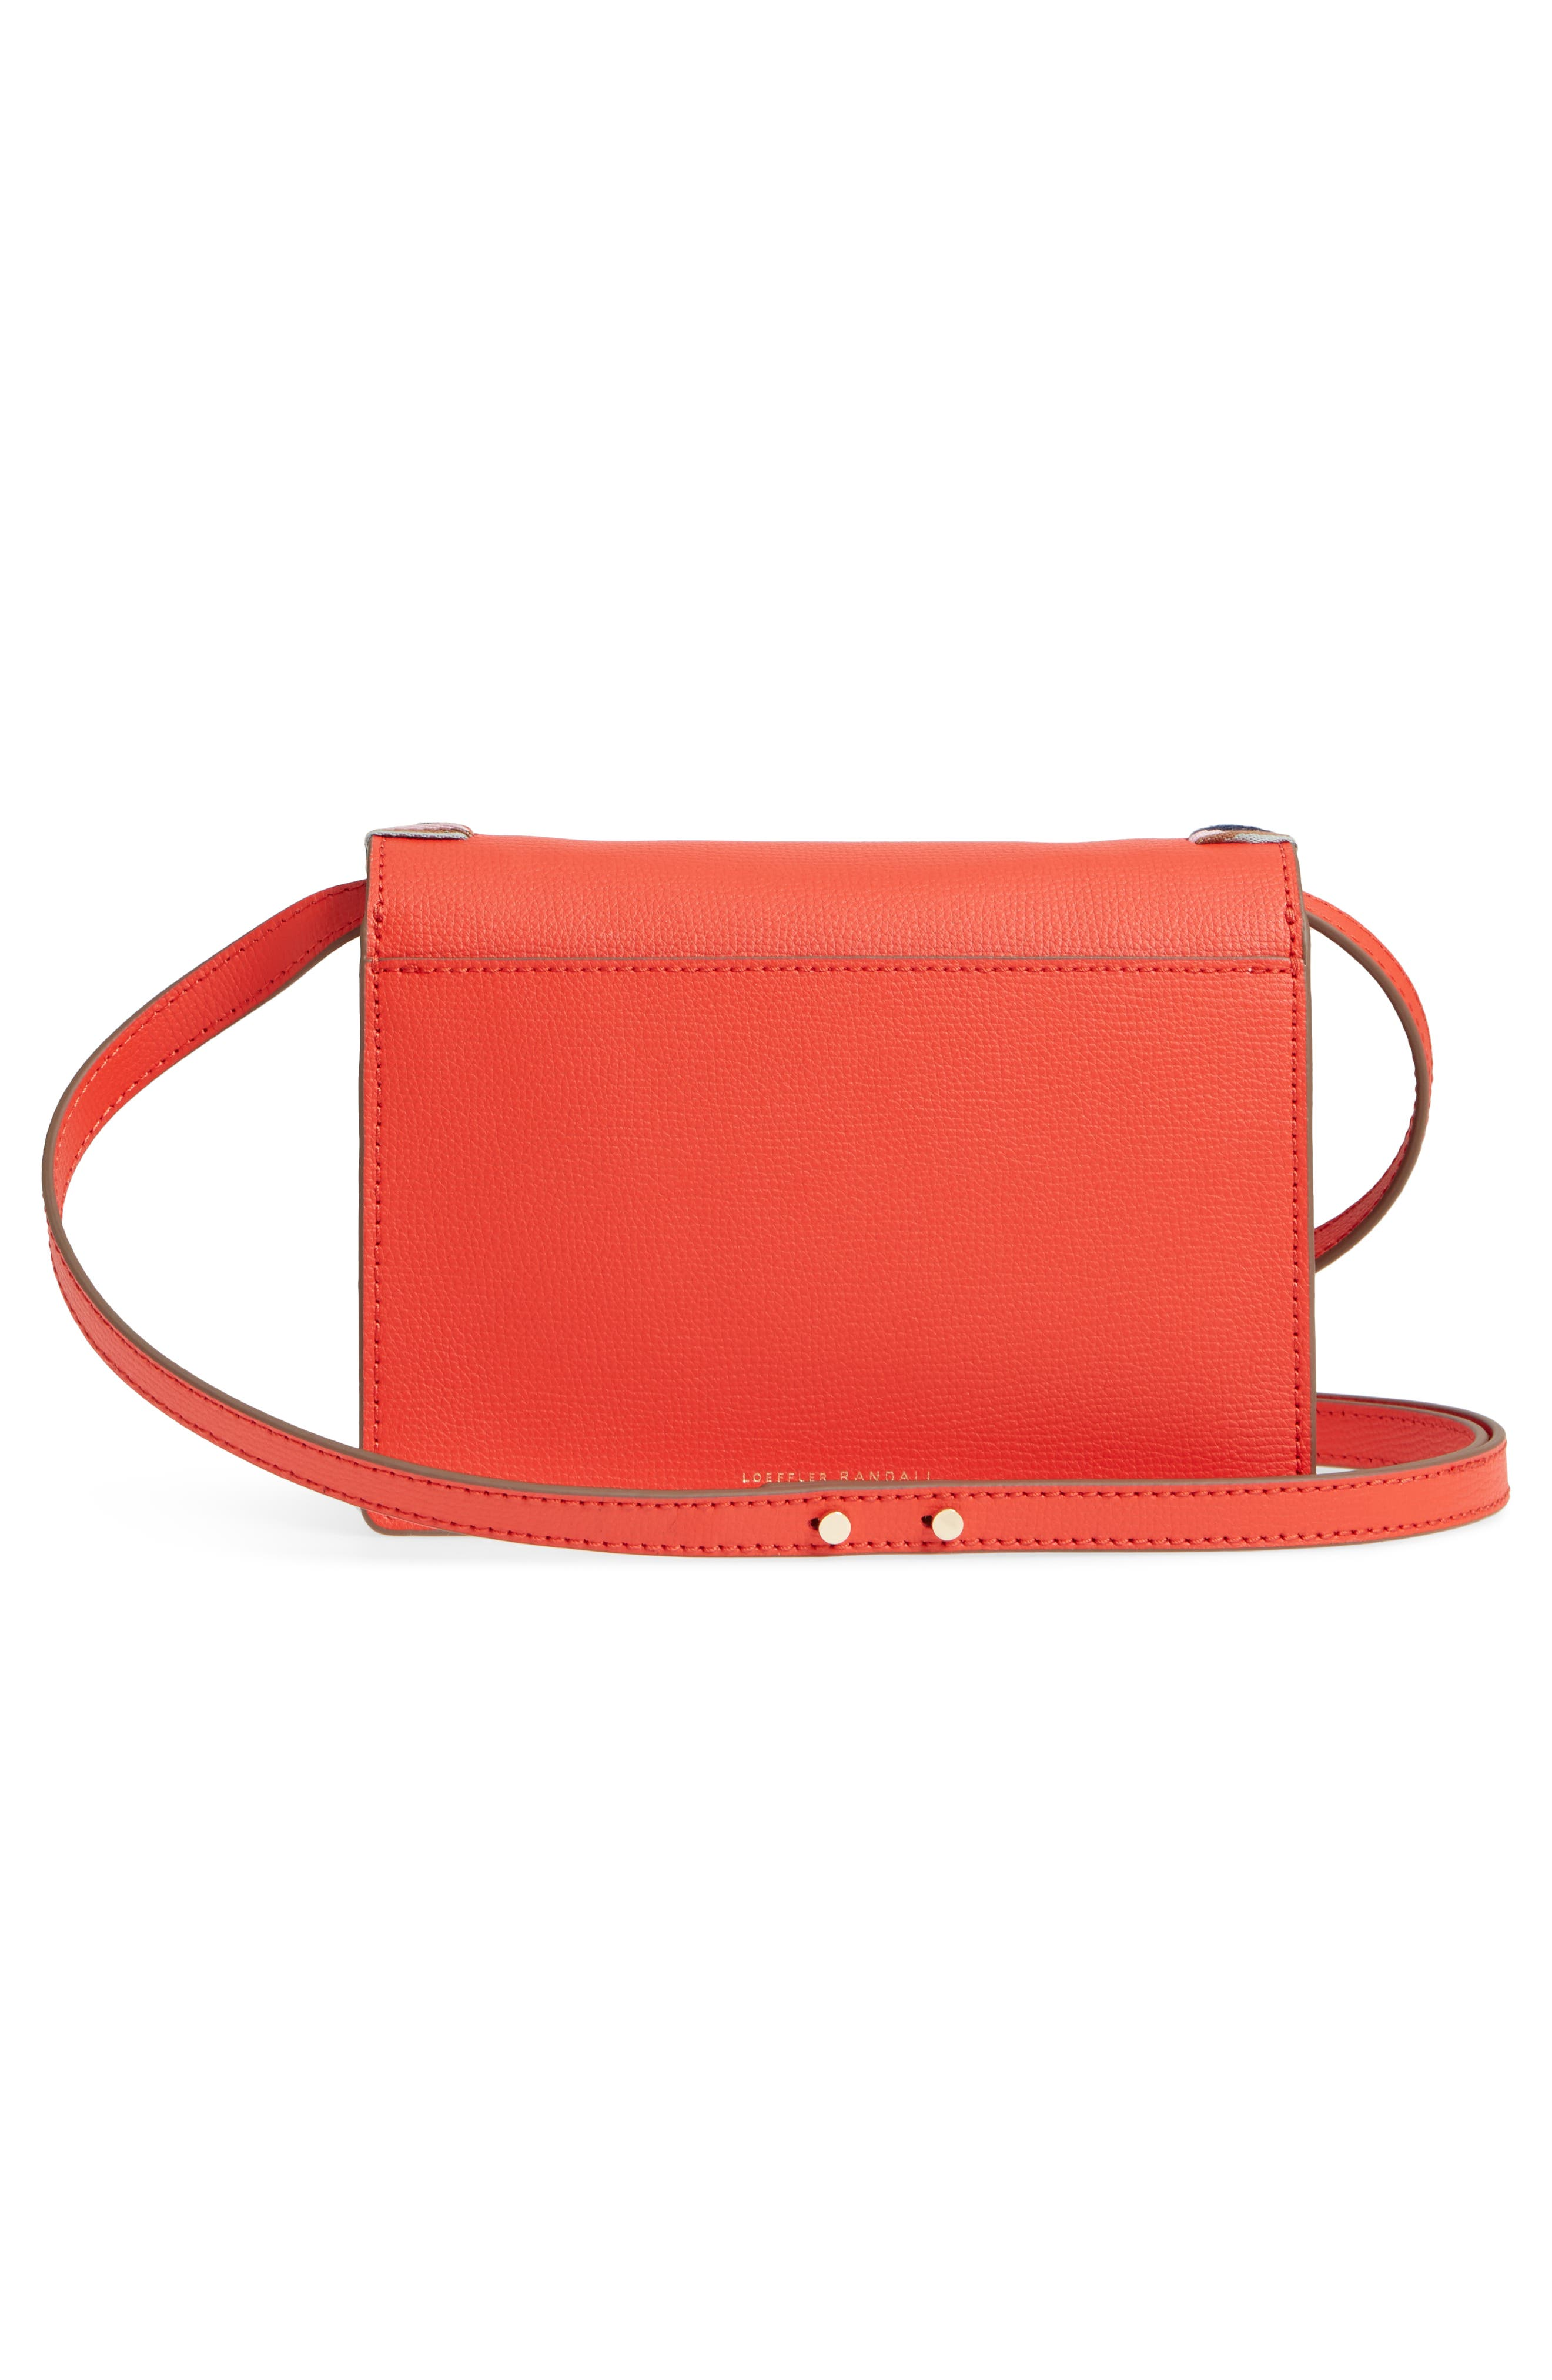 Mini Minimal Rider Leather Crossbody,                             Alternate thumbnail 3, color,                             802